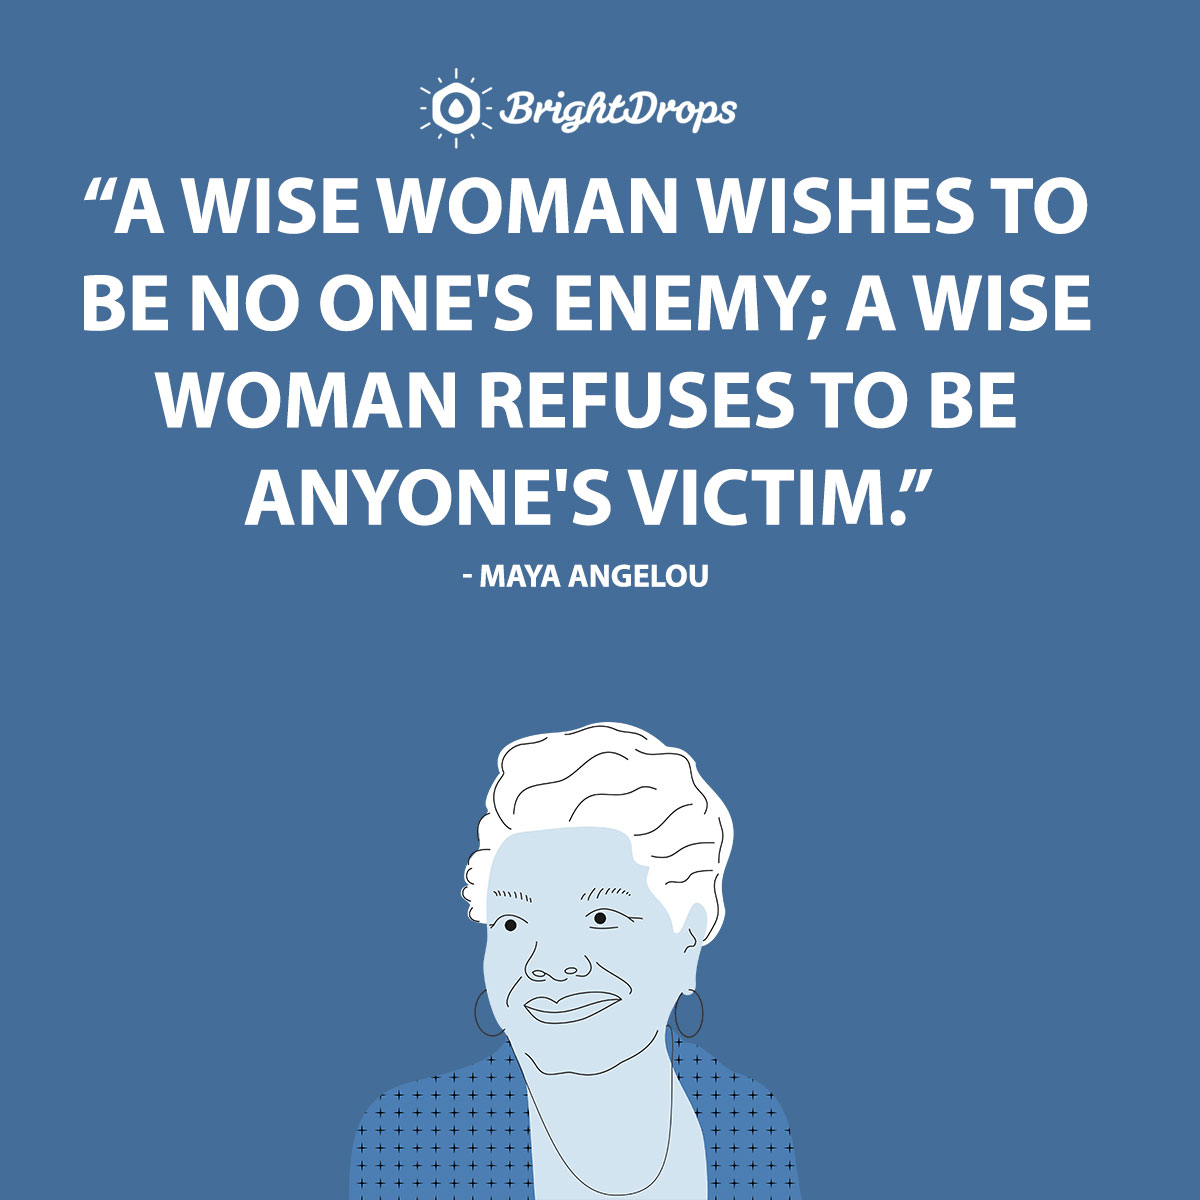 A wise woman wishes to be no one's enemy; a wise woman refuses to be anyone's victim. - Maya Angelou